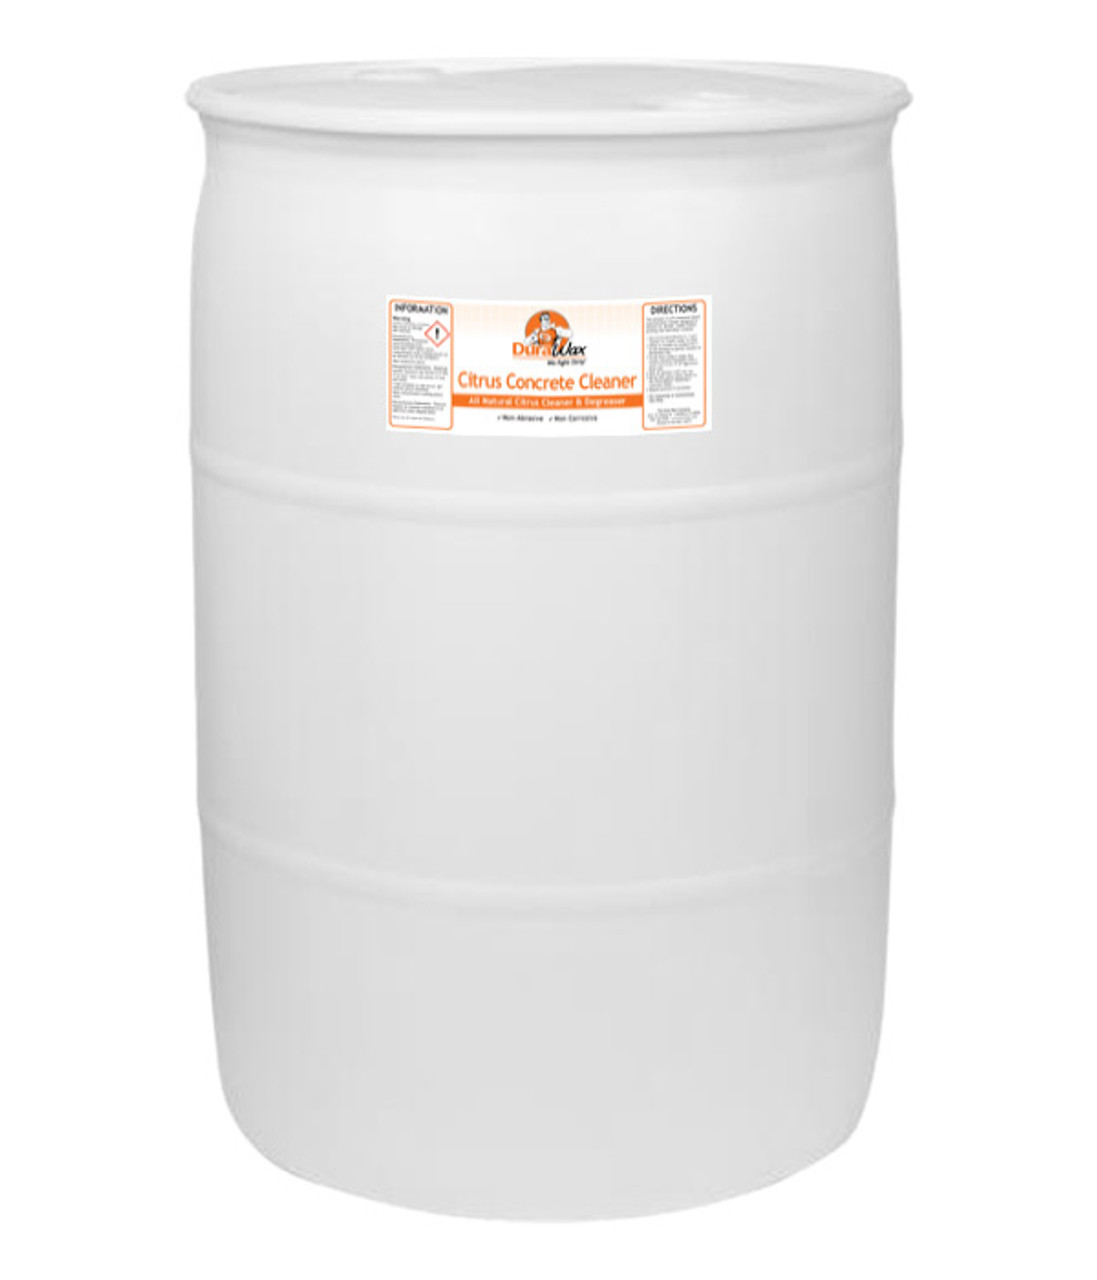 Citrus Concrete Cleaner in 55 Gallon drums for large scale operations.